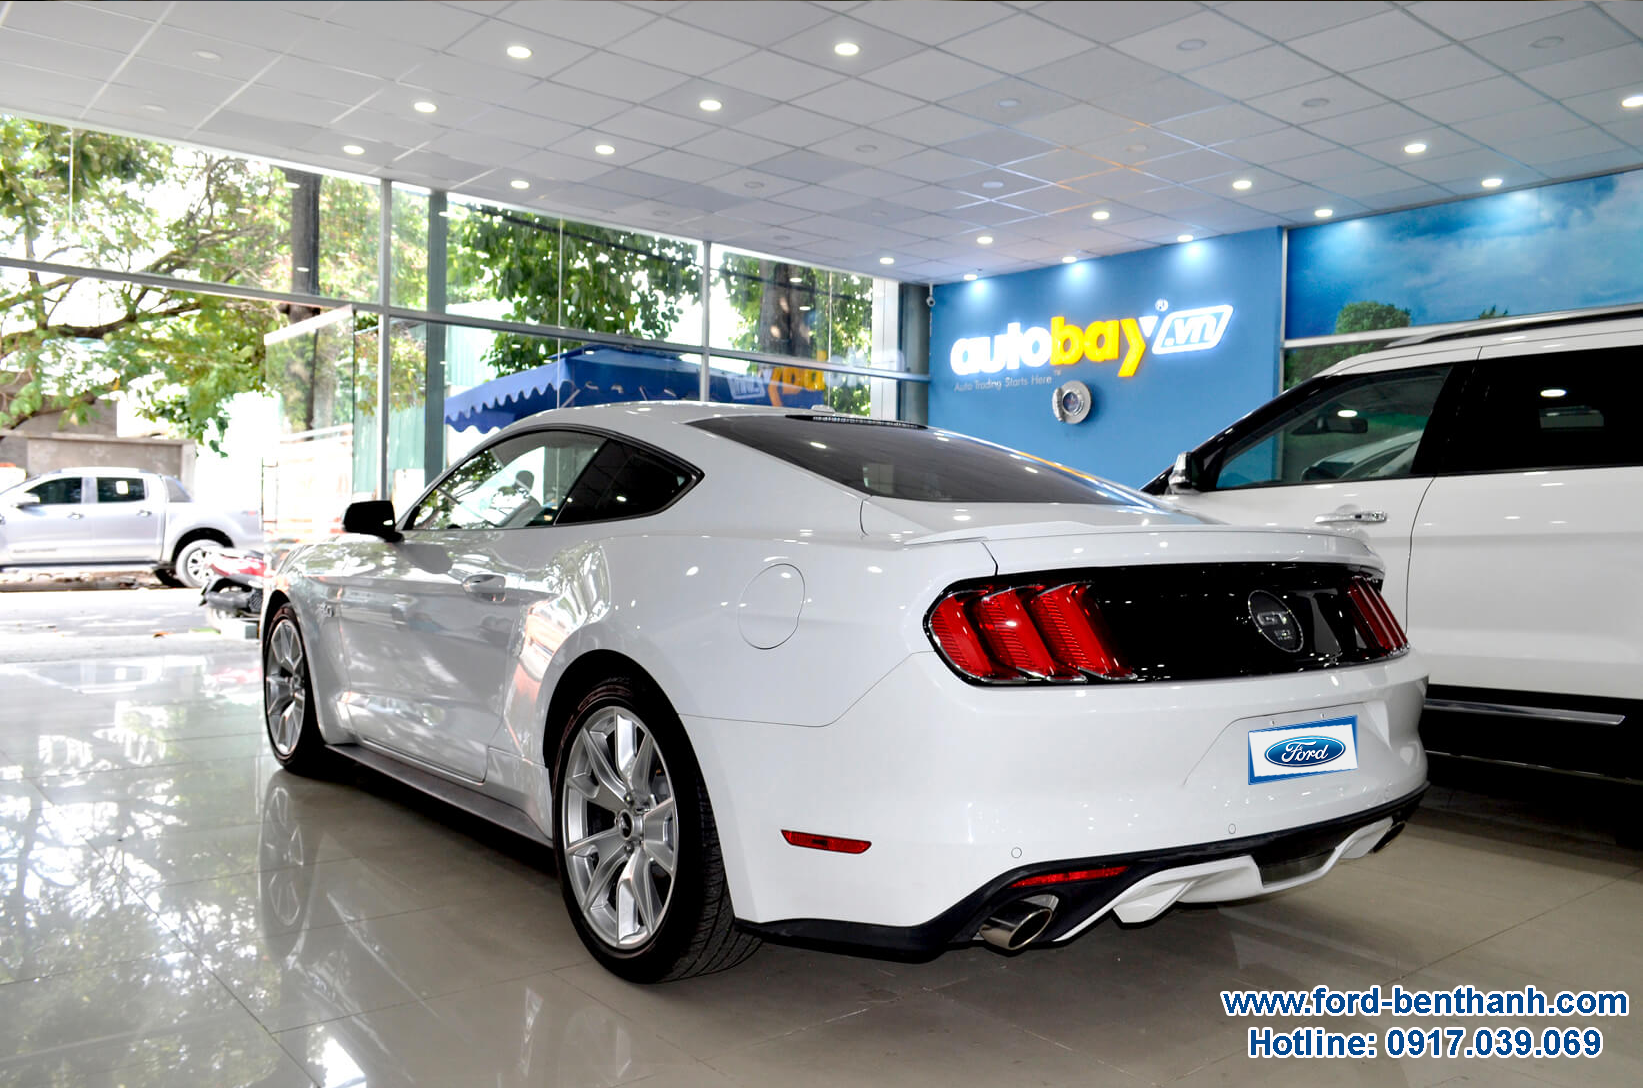 ford-mustang-ford-benthanh-0917039069-4